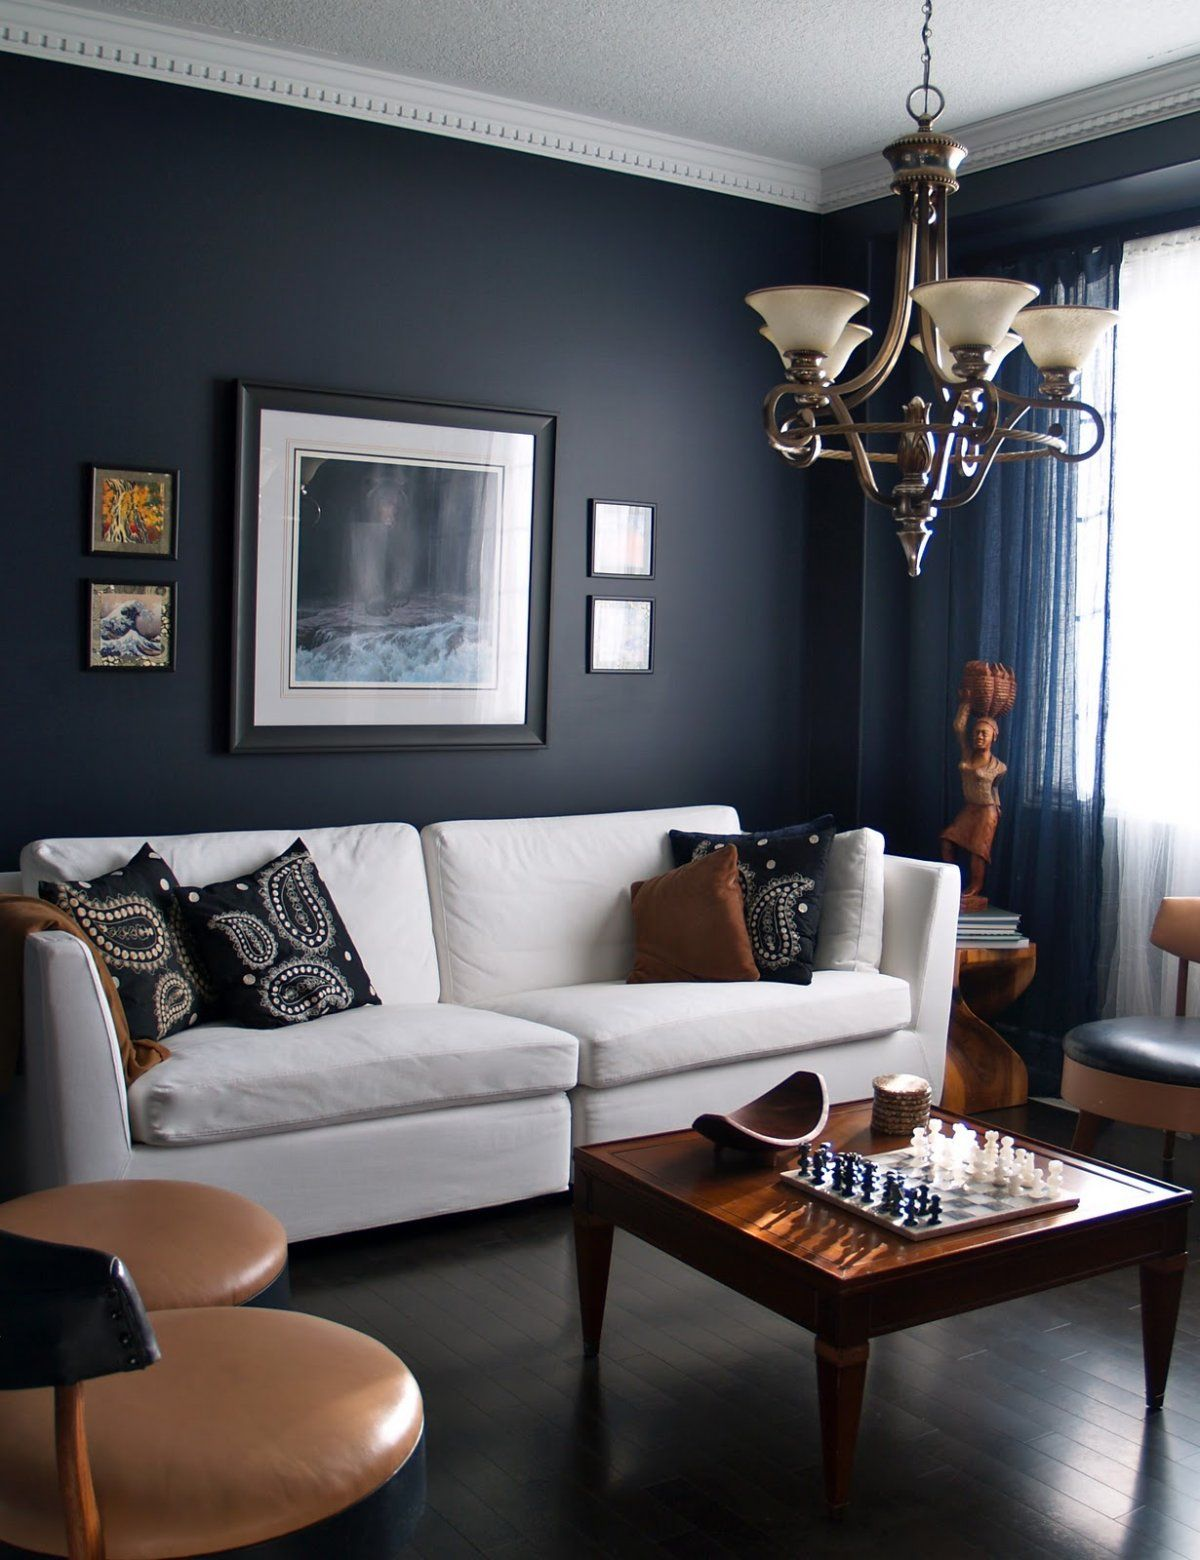 Dark and white themed navy living room ideas with classic white fabric sofa furniture on the black wood flooring and natural brown wood square shaped table